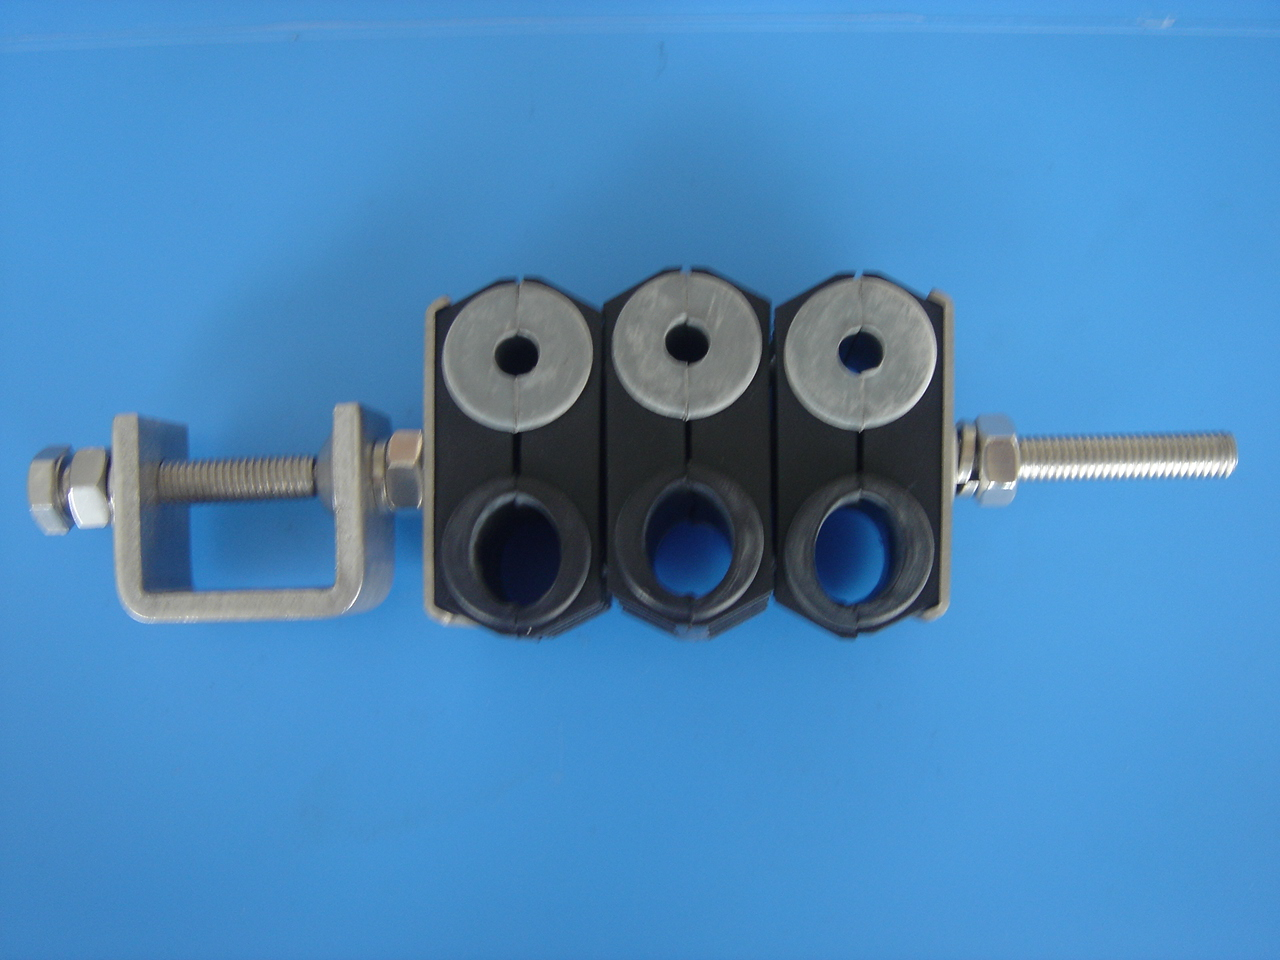 cable clamp for 3 power cables and 3 fiber optic cables